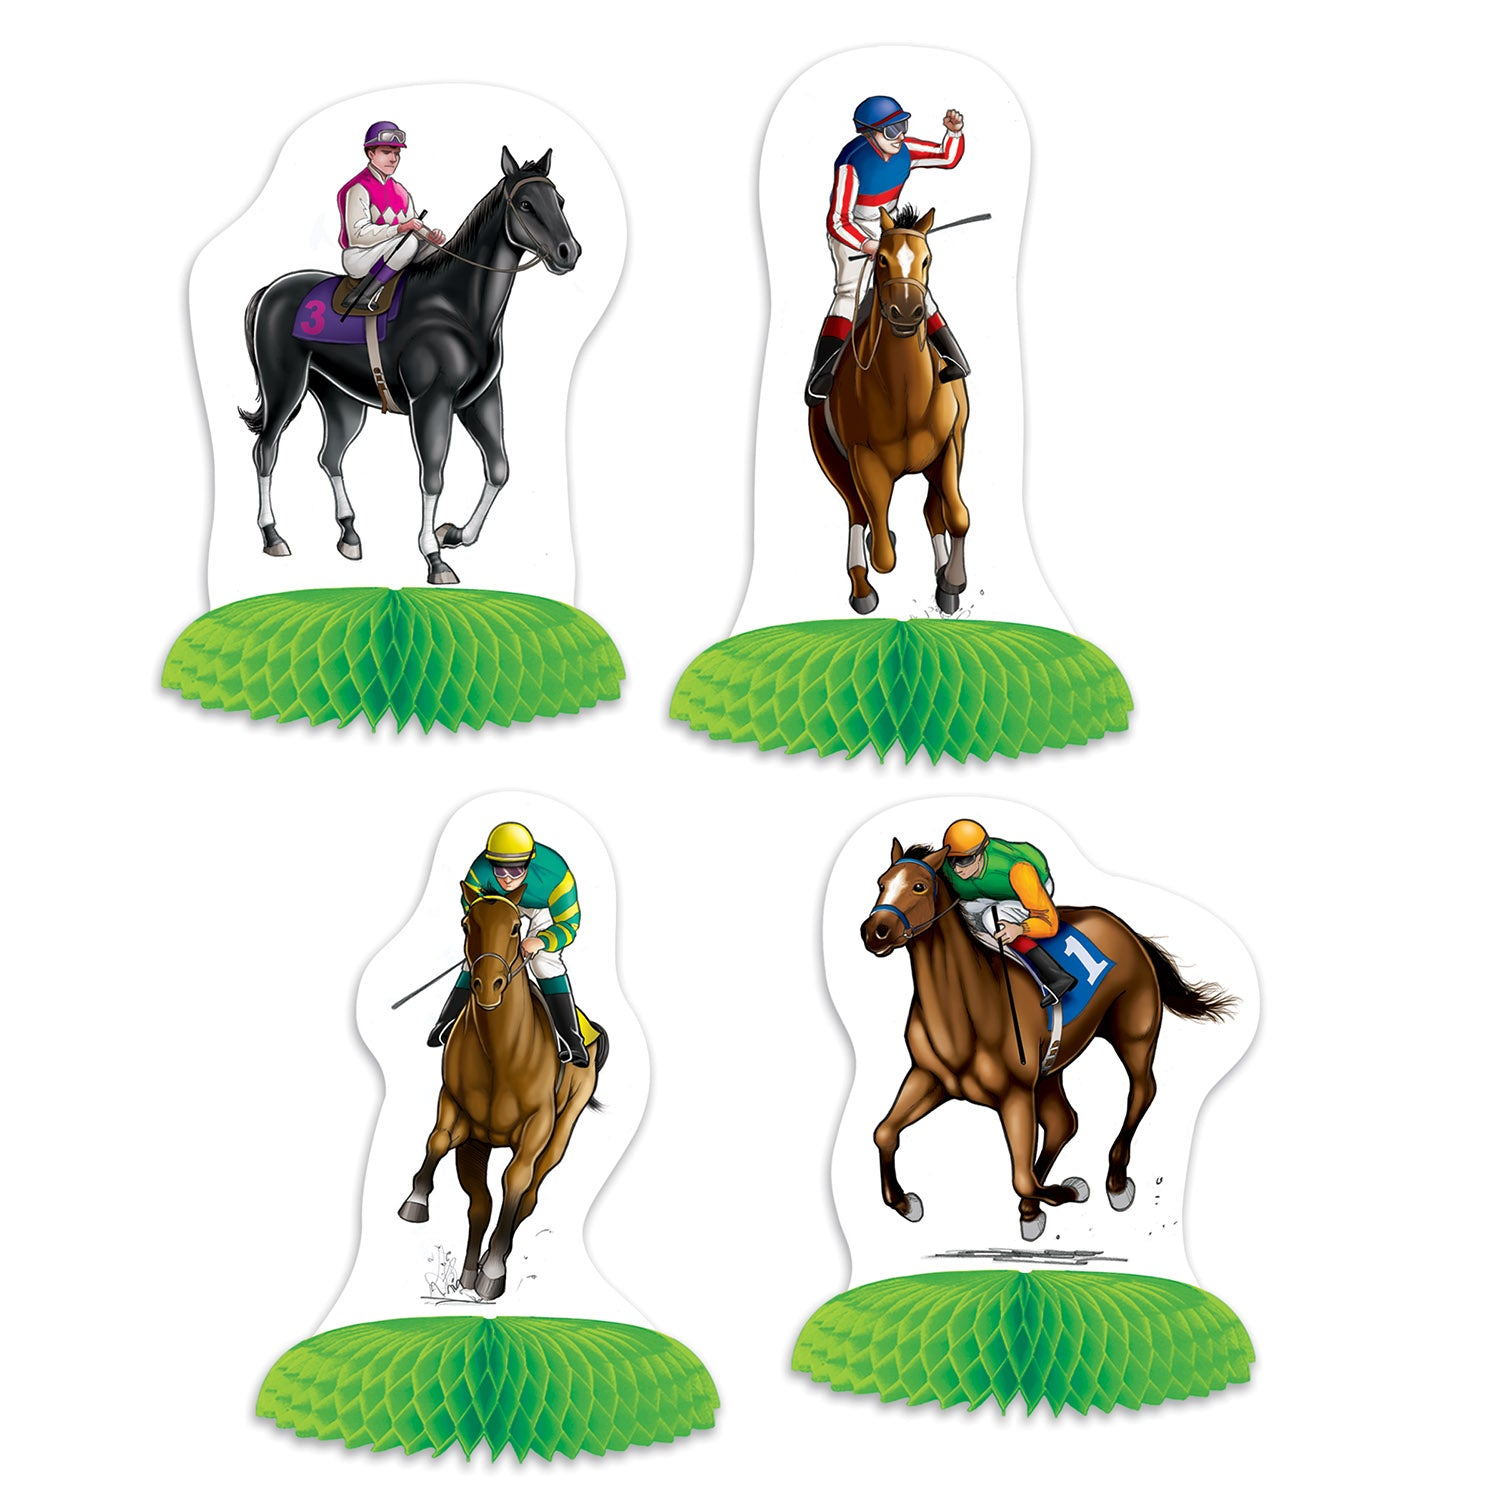 Horse Racing Mini Centerpieces (4/Pkg) by Beistle - Derby Day Theme Decorations